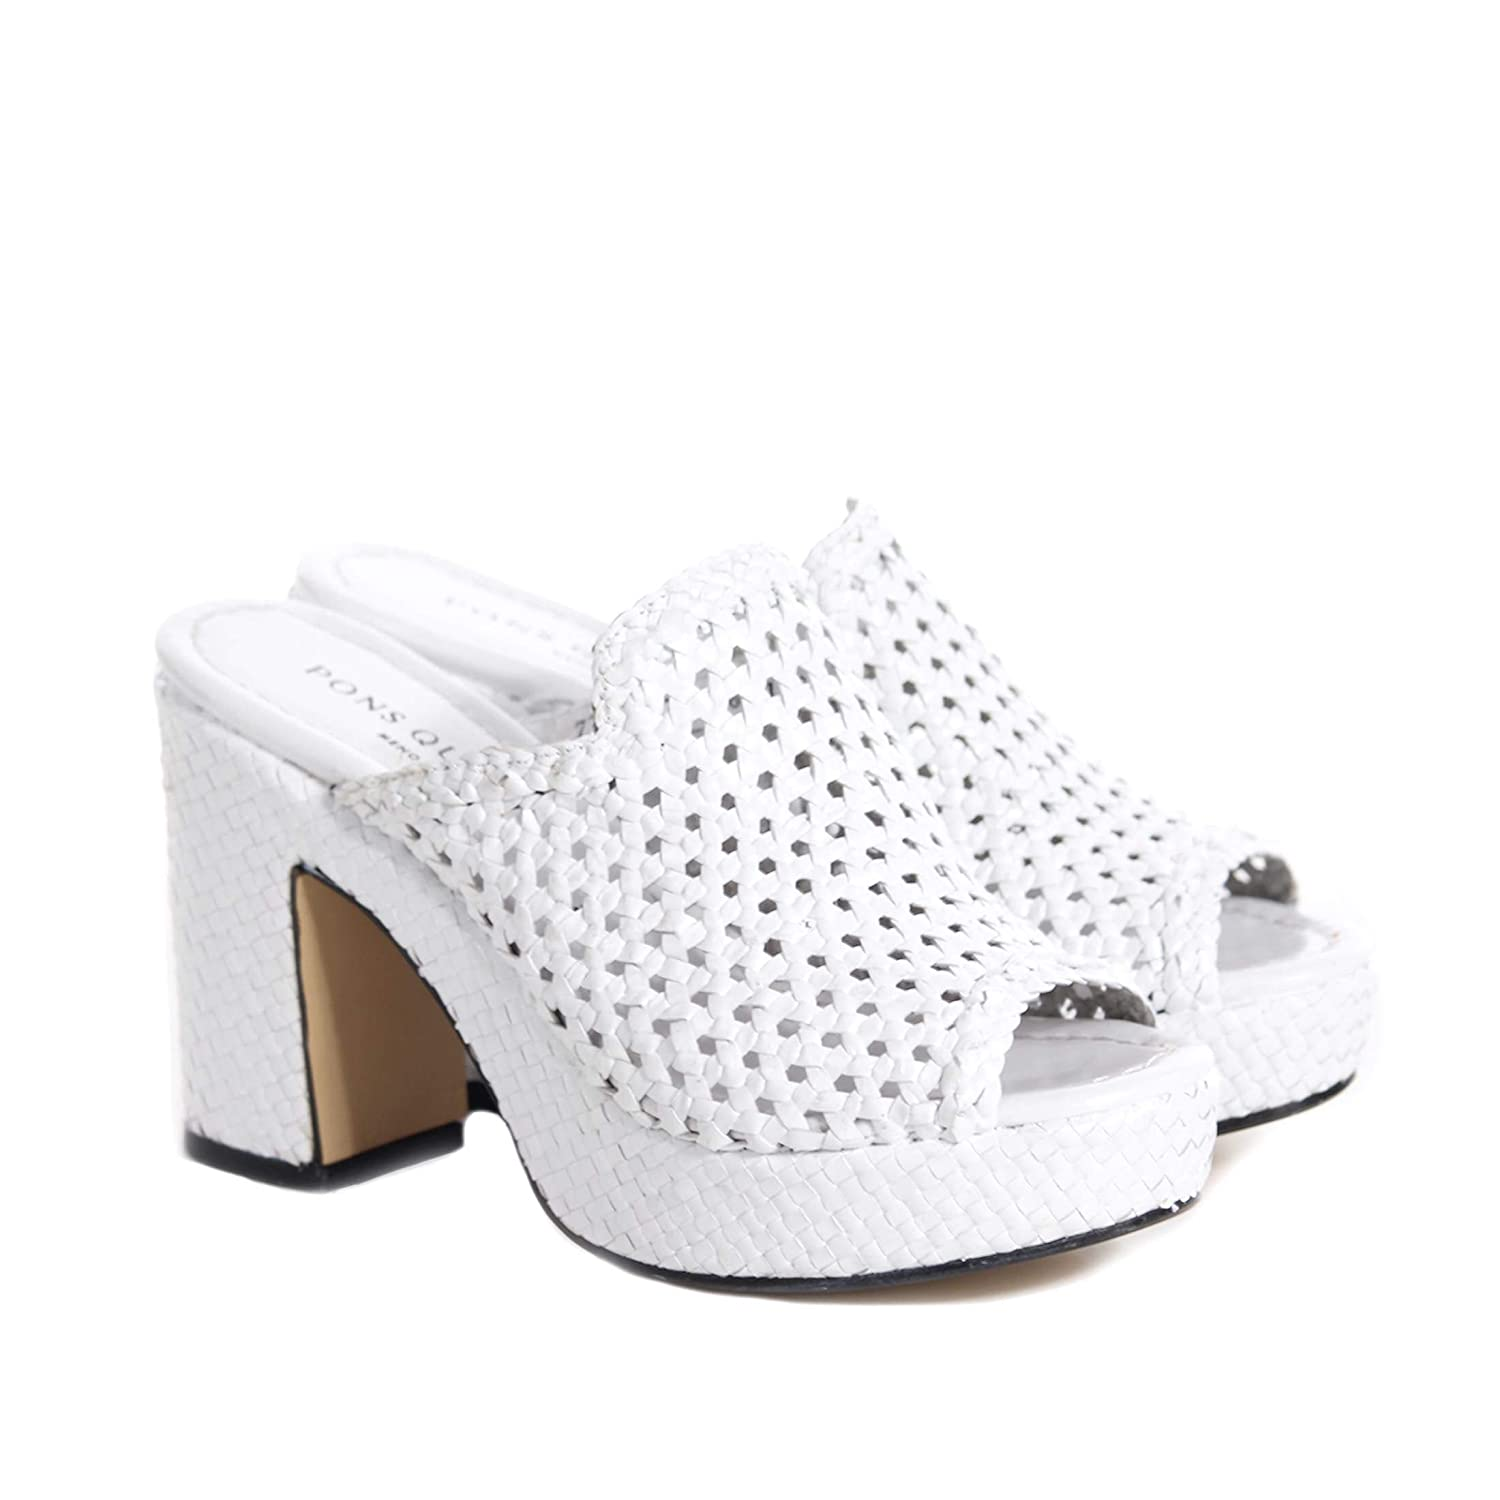 - PONS QUINTANA Women's 7745000 White Leather Wedges